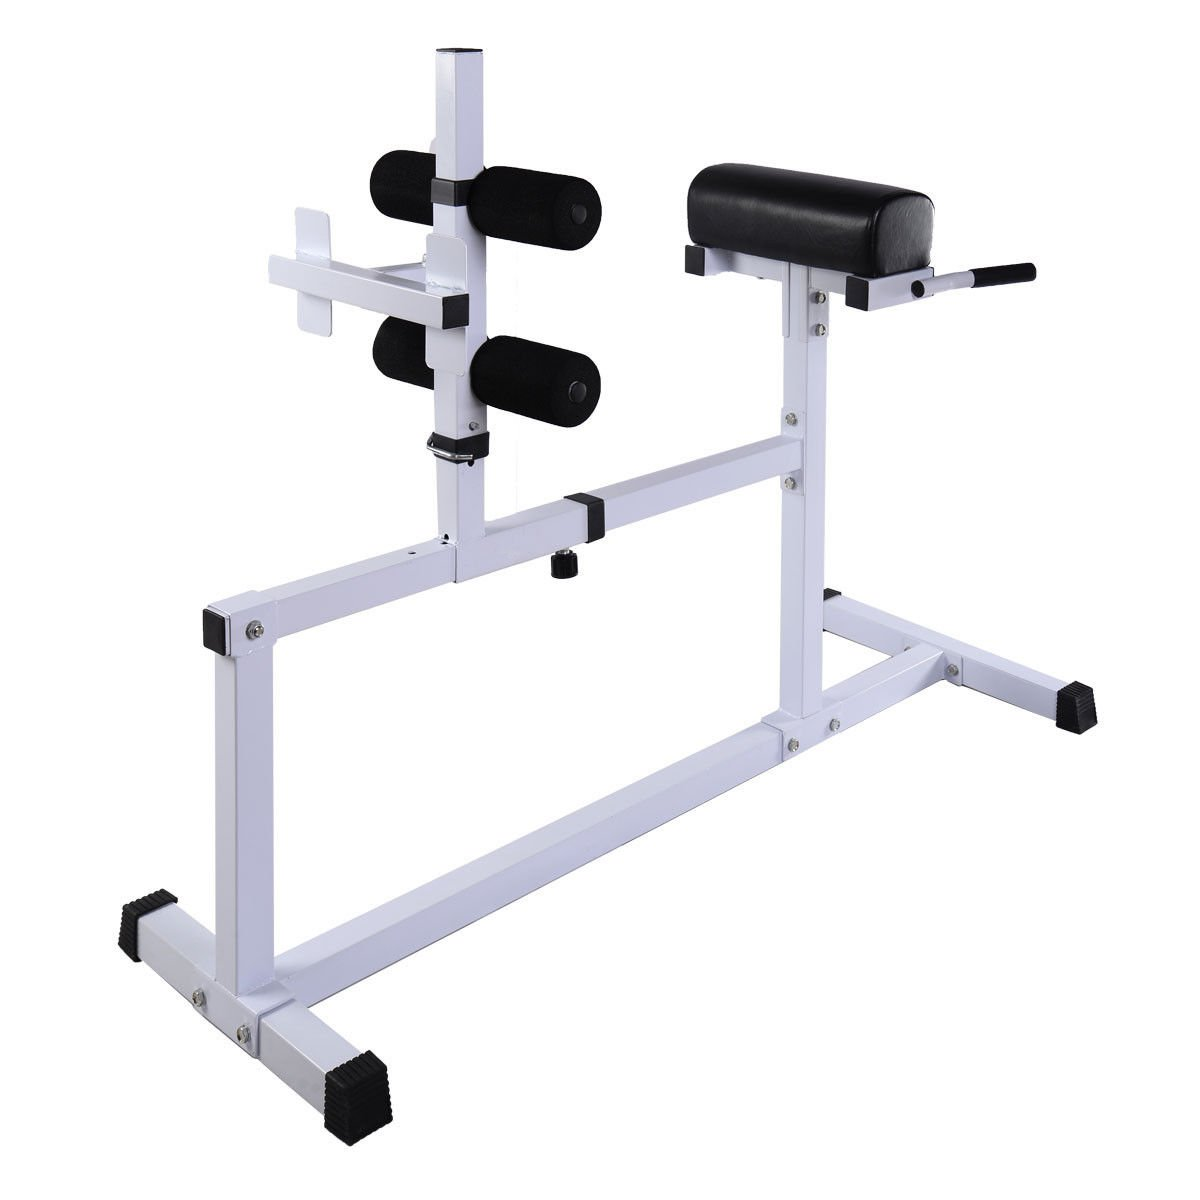 Goplus Fitness Hyper Extension Hyperextension Bench Chair Workout Core Abdominal